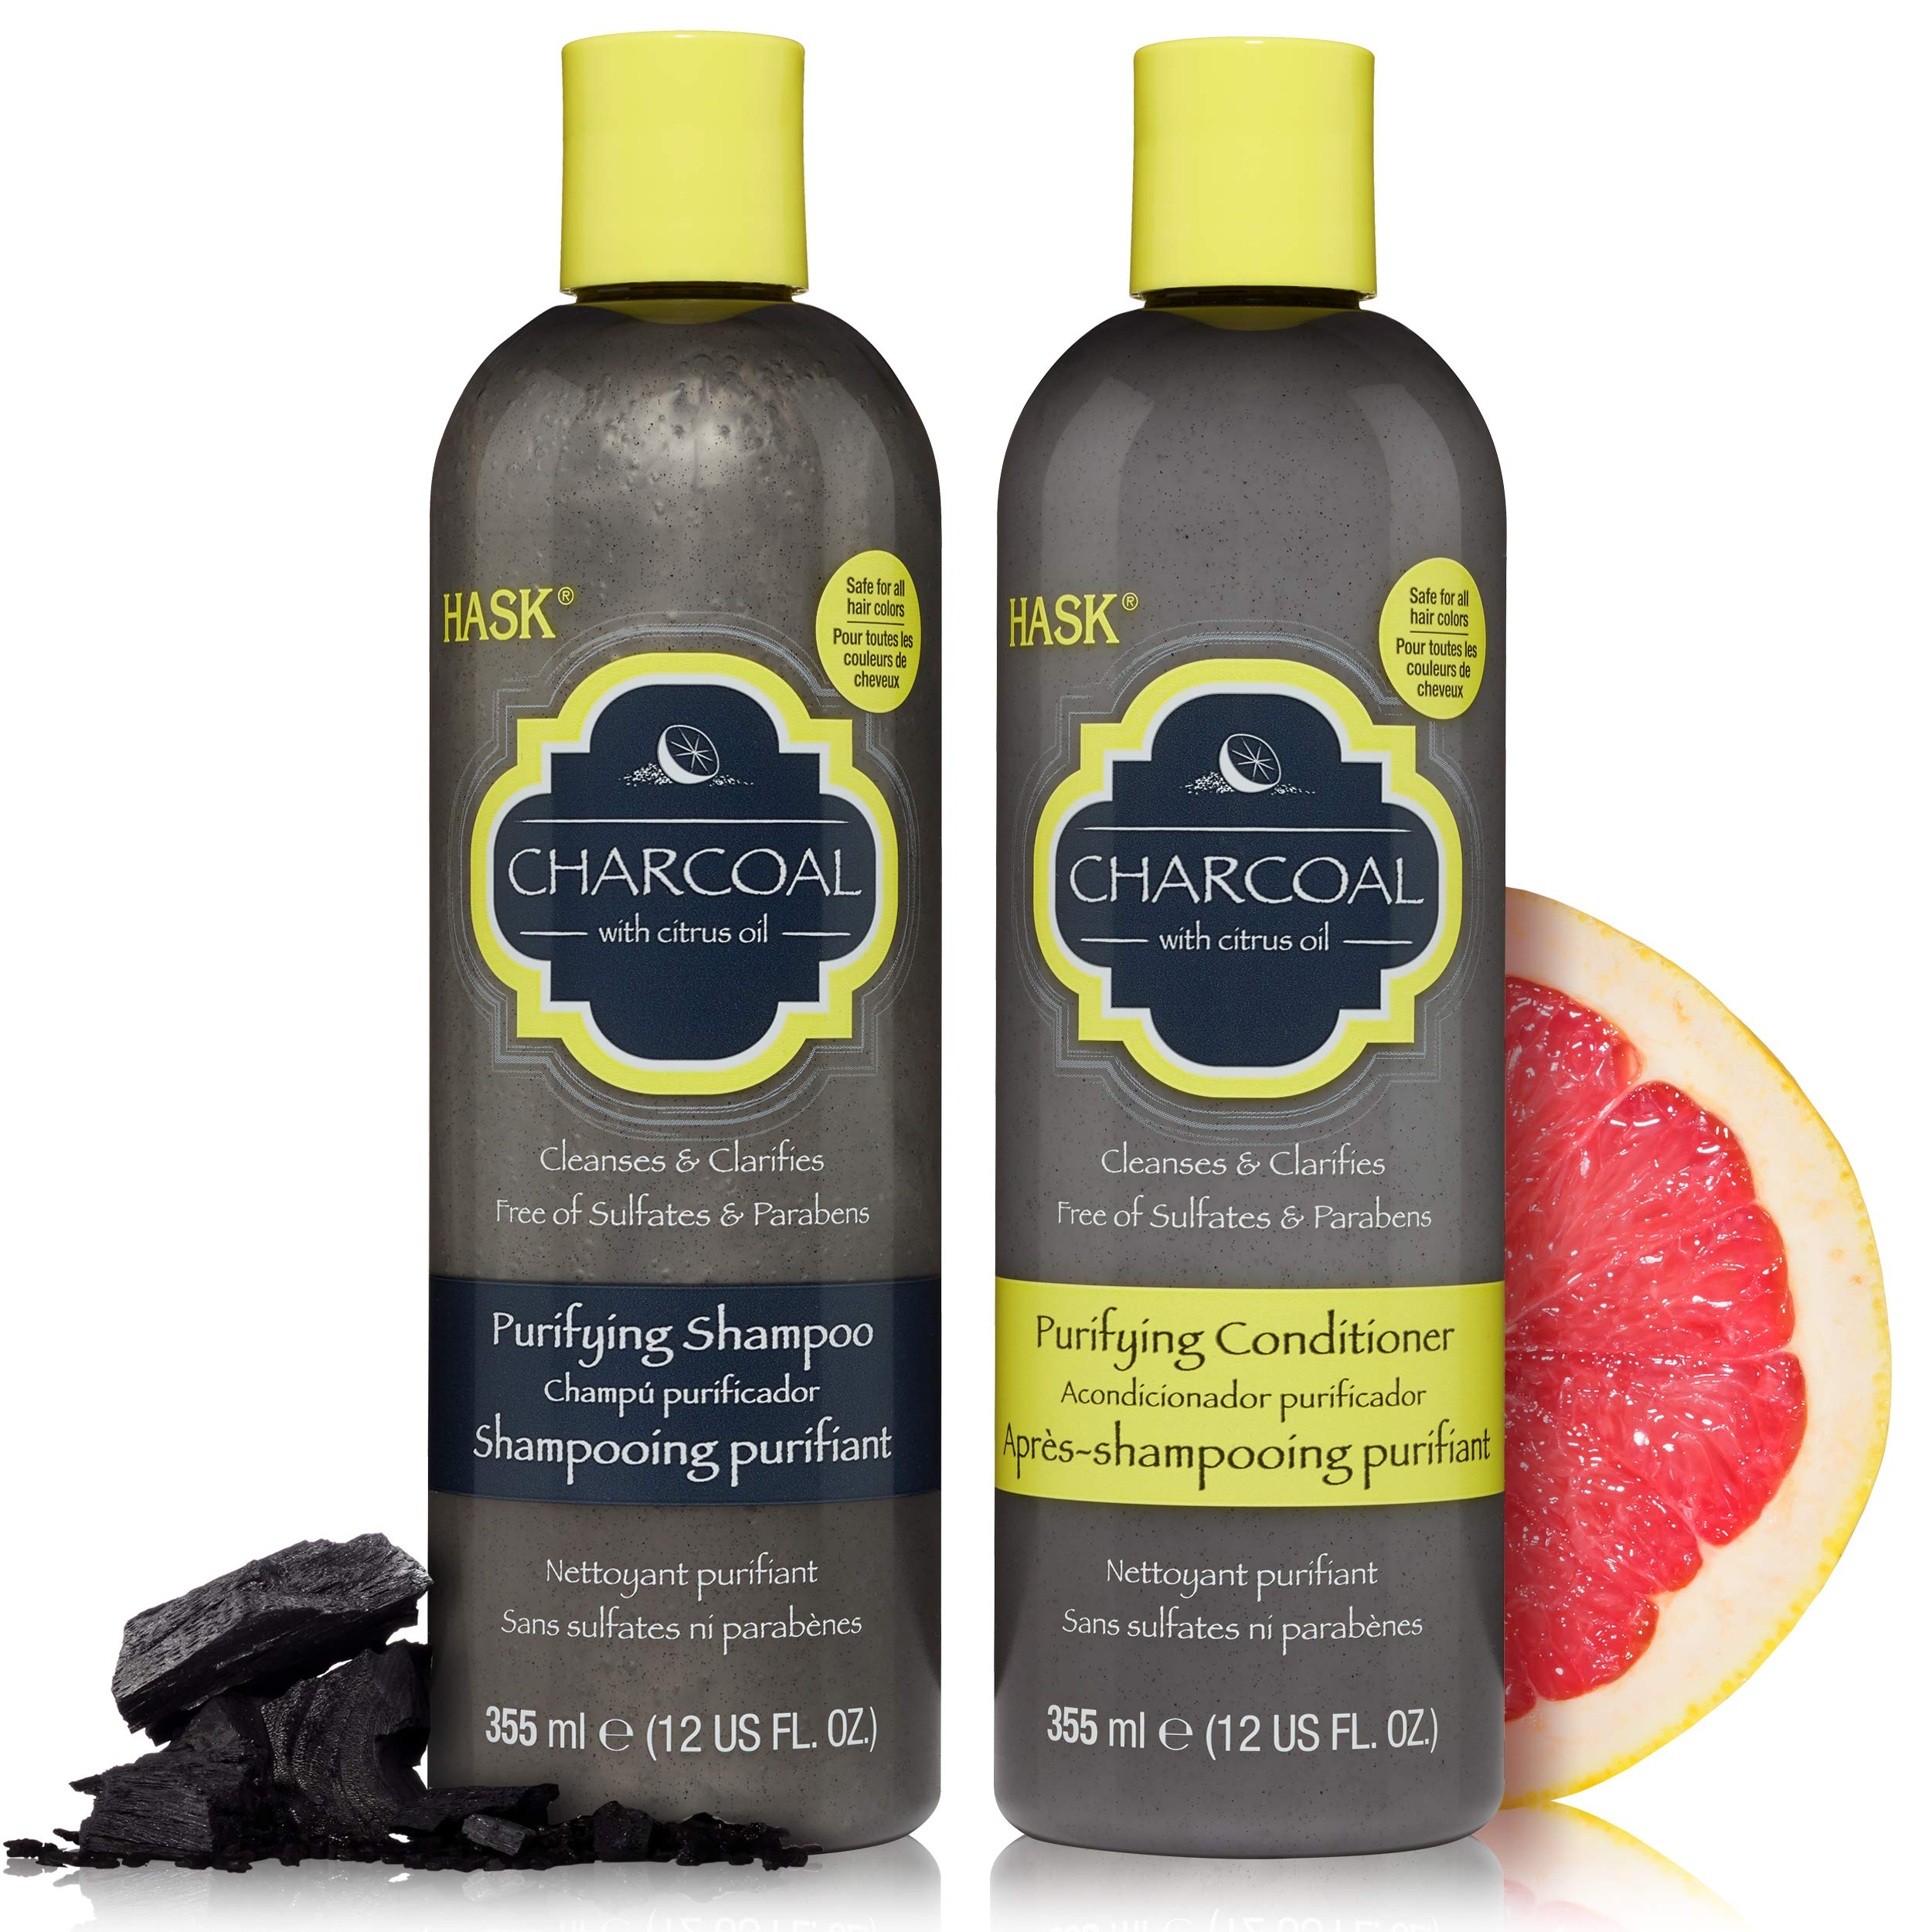 HASK CHARCOAL WITH CITRUS OIL Shampoo and Conditioner Set Detoxifying, Clarifying and Purifying - Color safe, gluten-free, sulfate-free, paraben-free - 1 Shampoo and 1 Conditioner